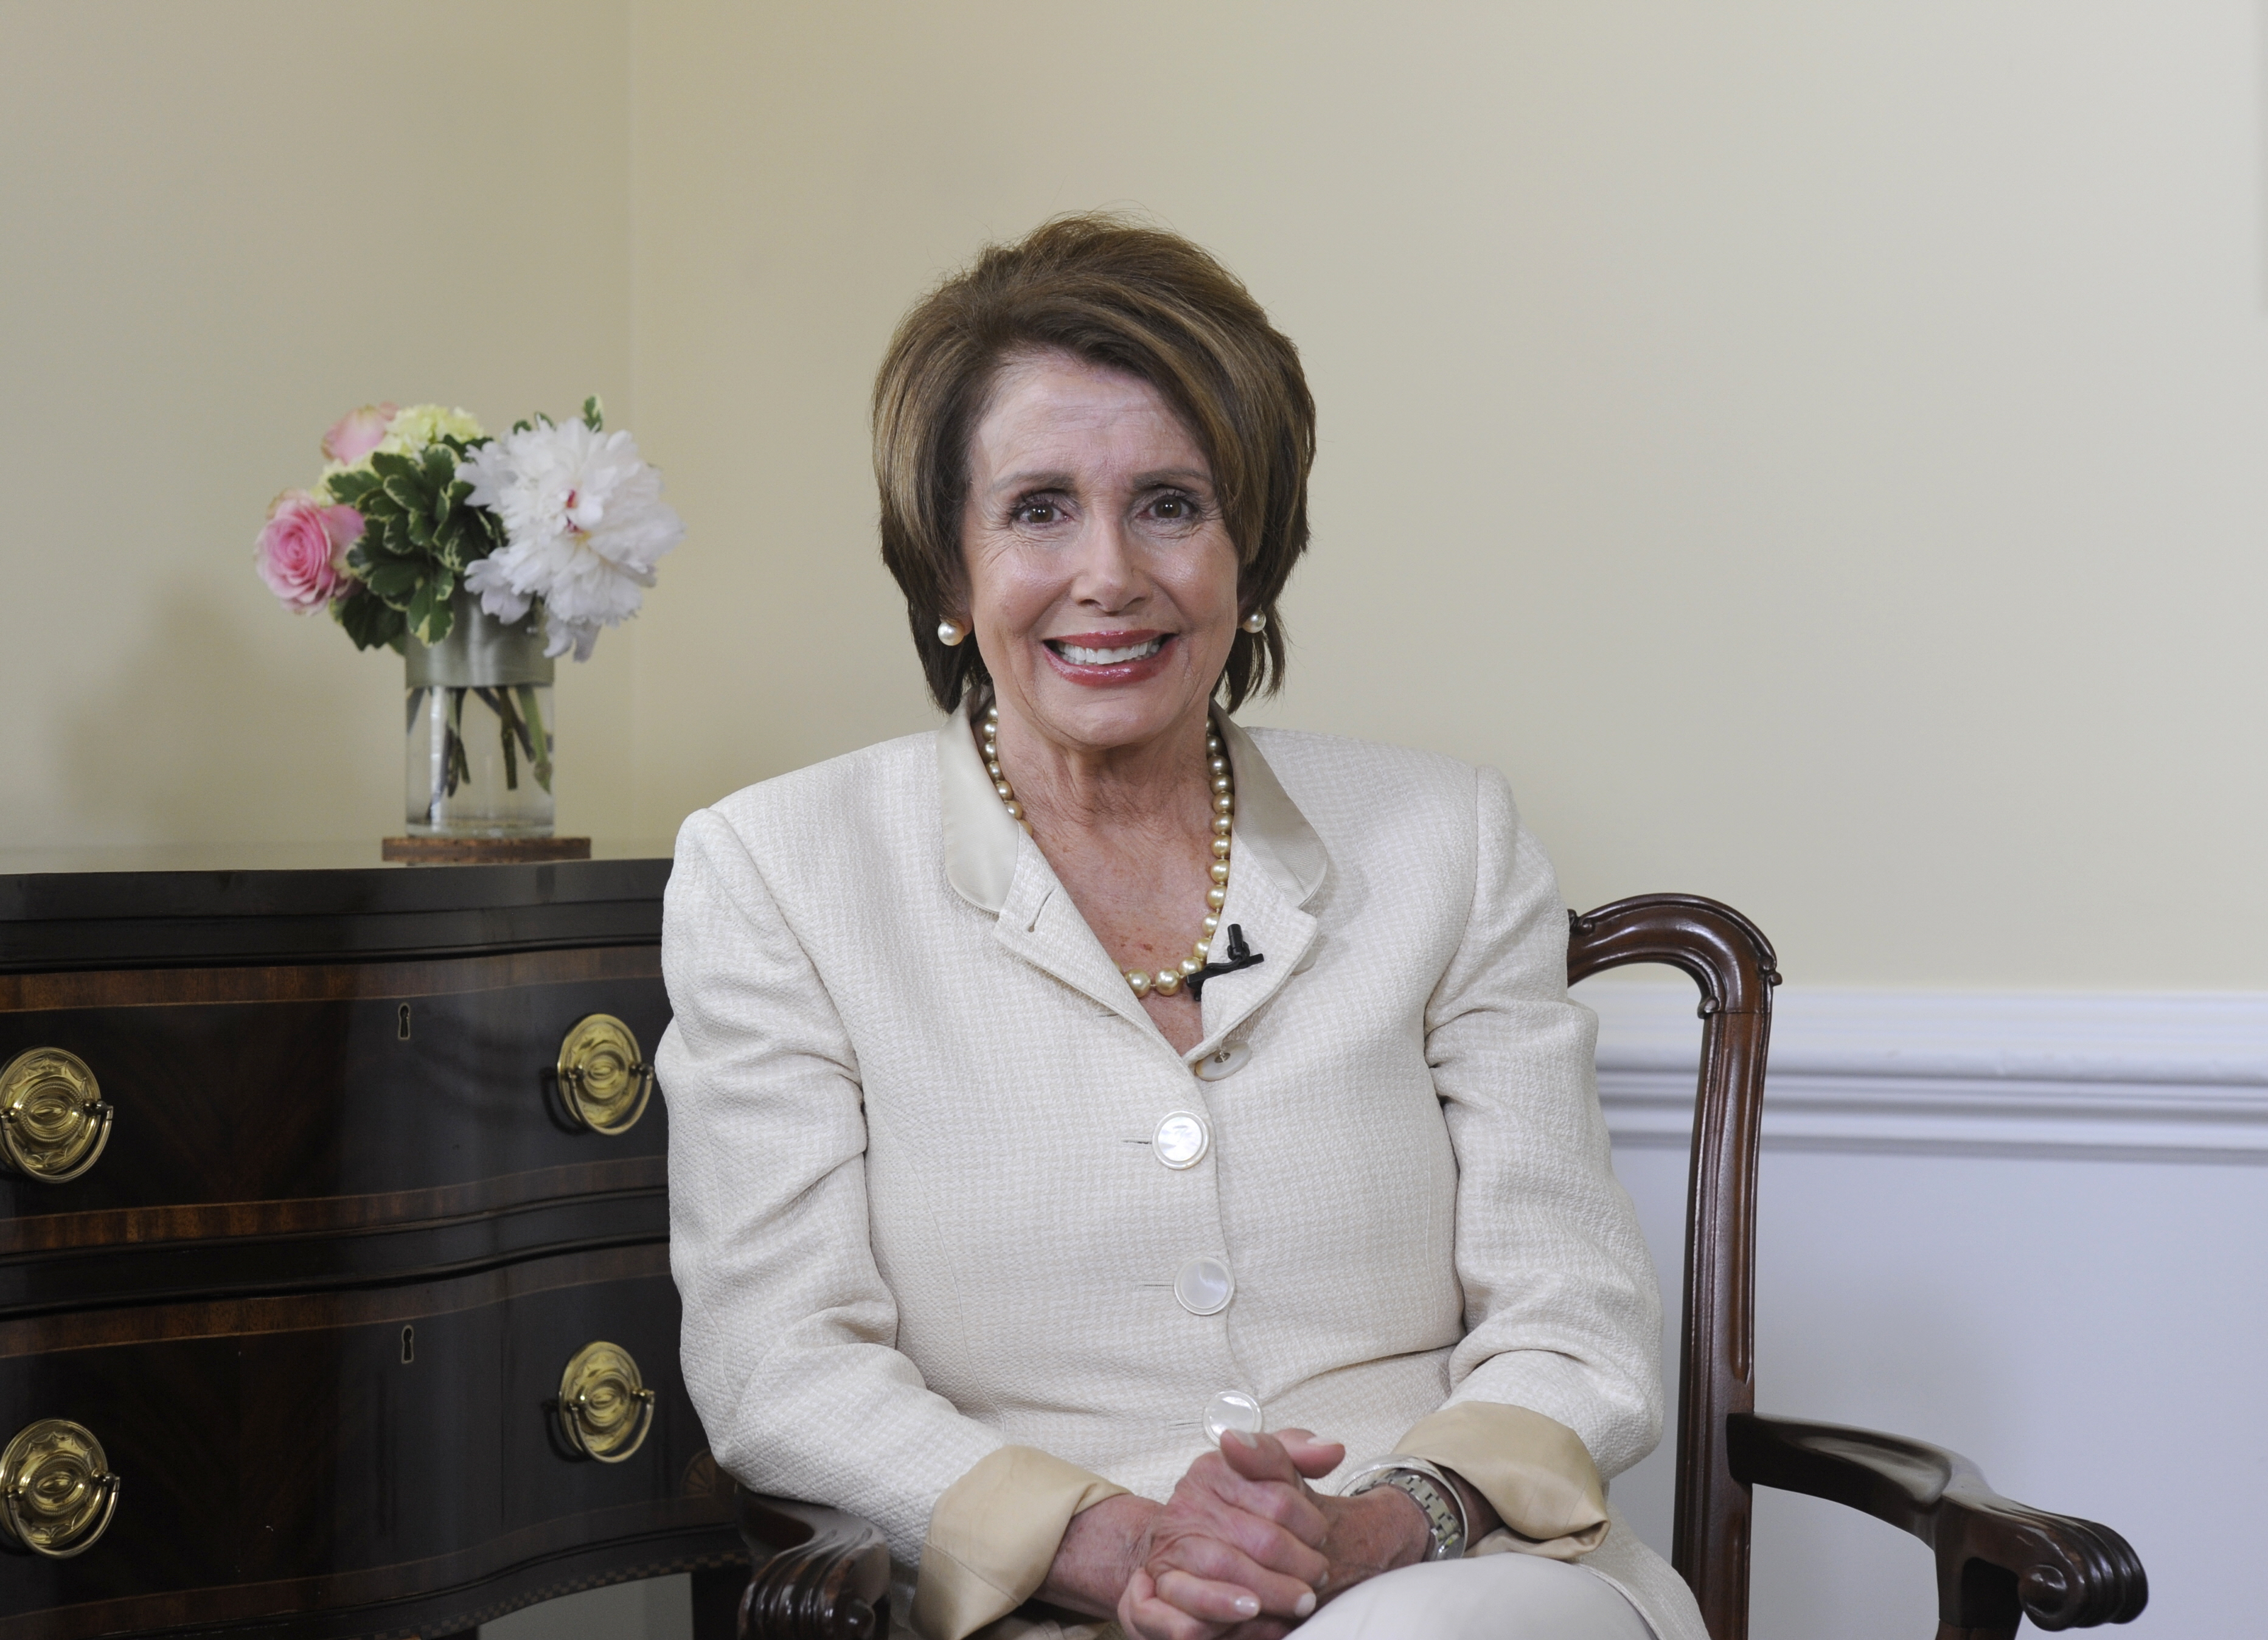 Capital Download: Pelosi on Boehner, Hillary Clinton and Wendy Davis